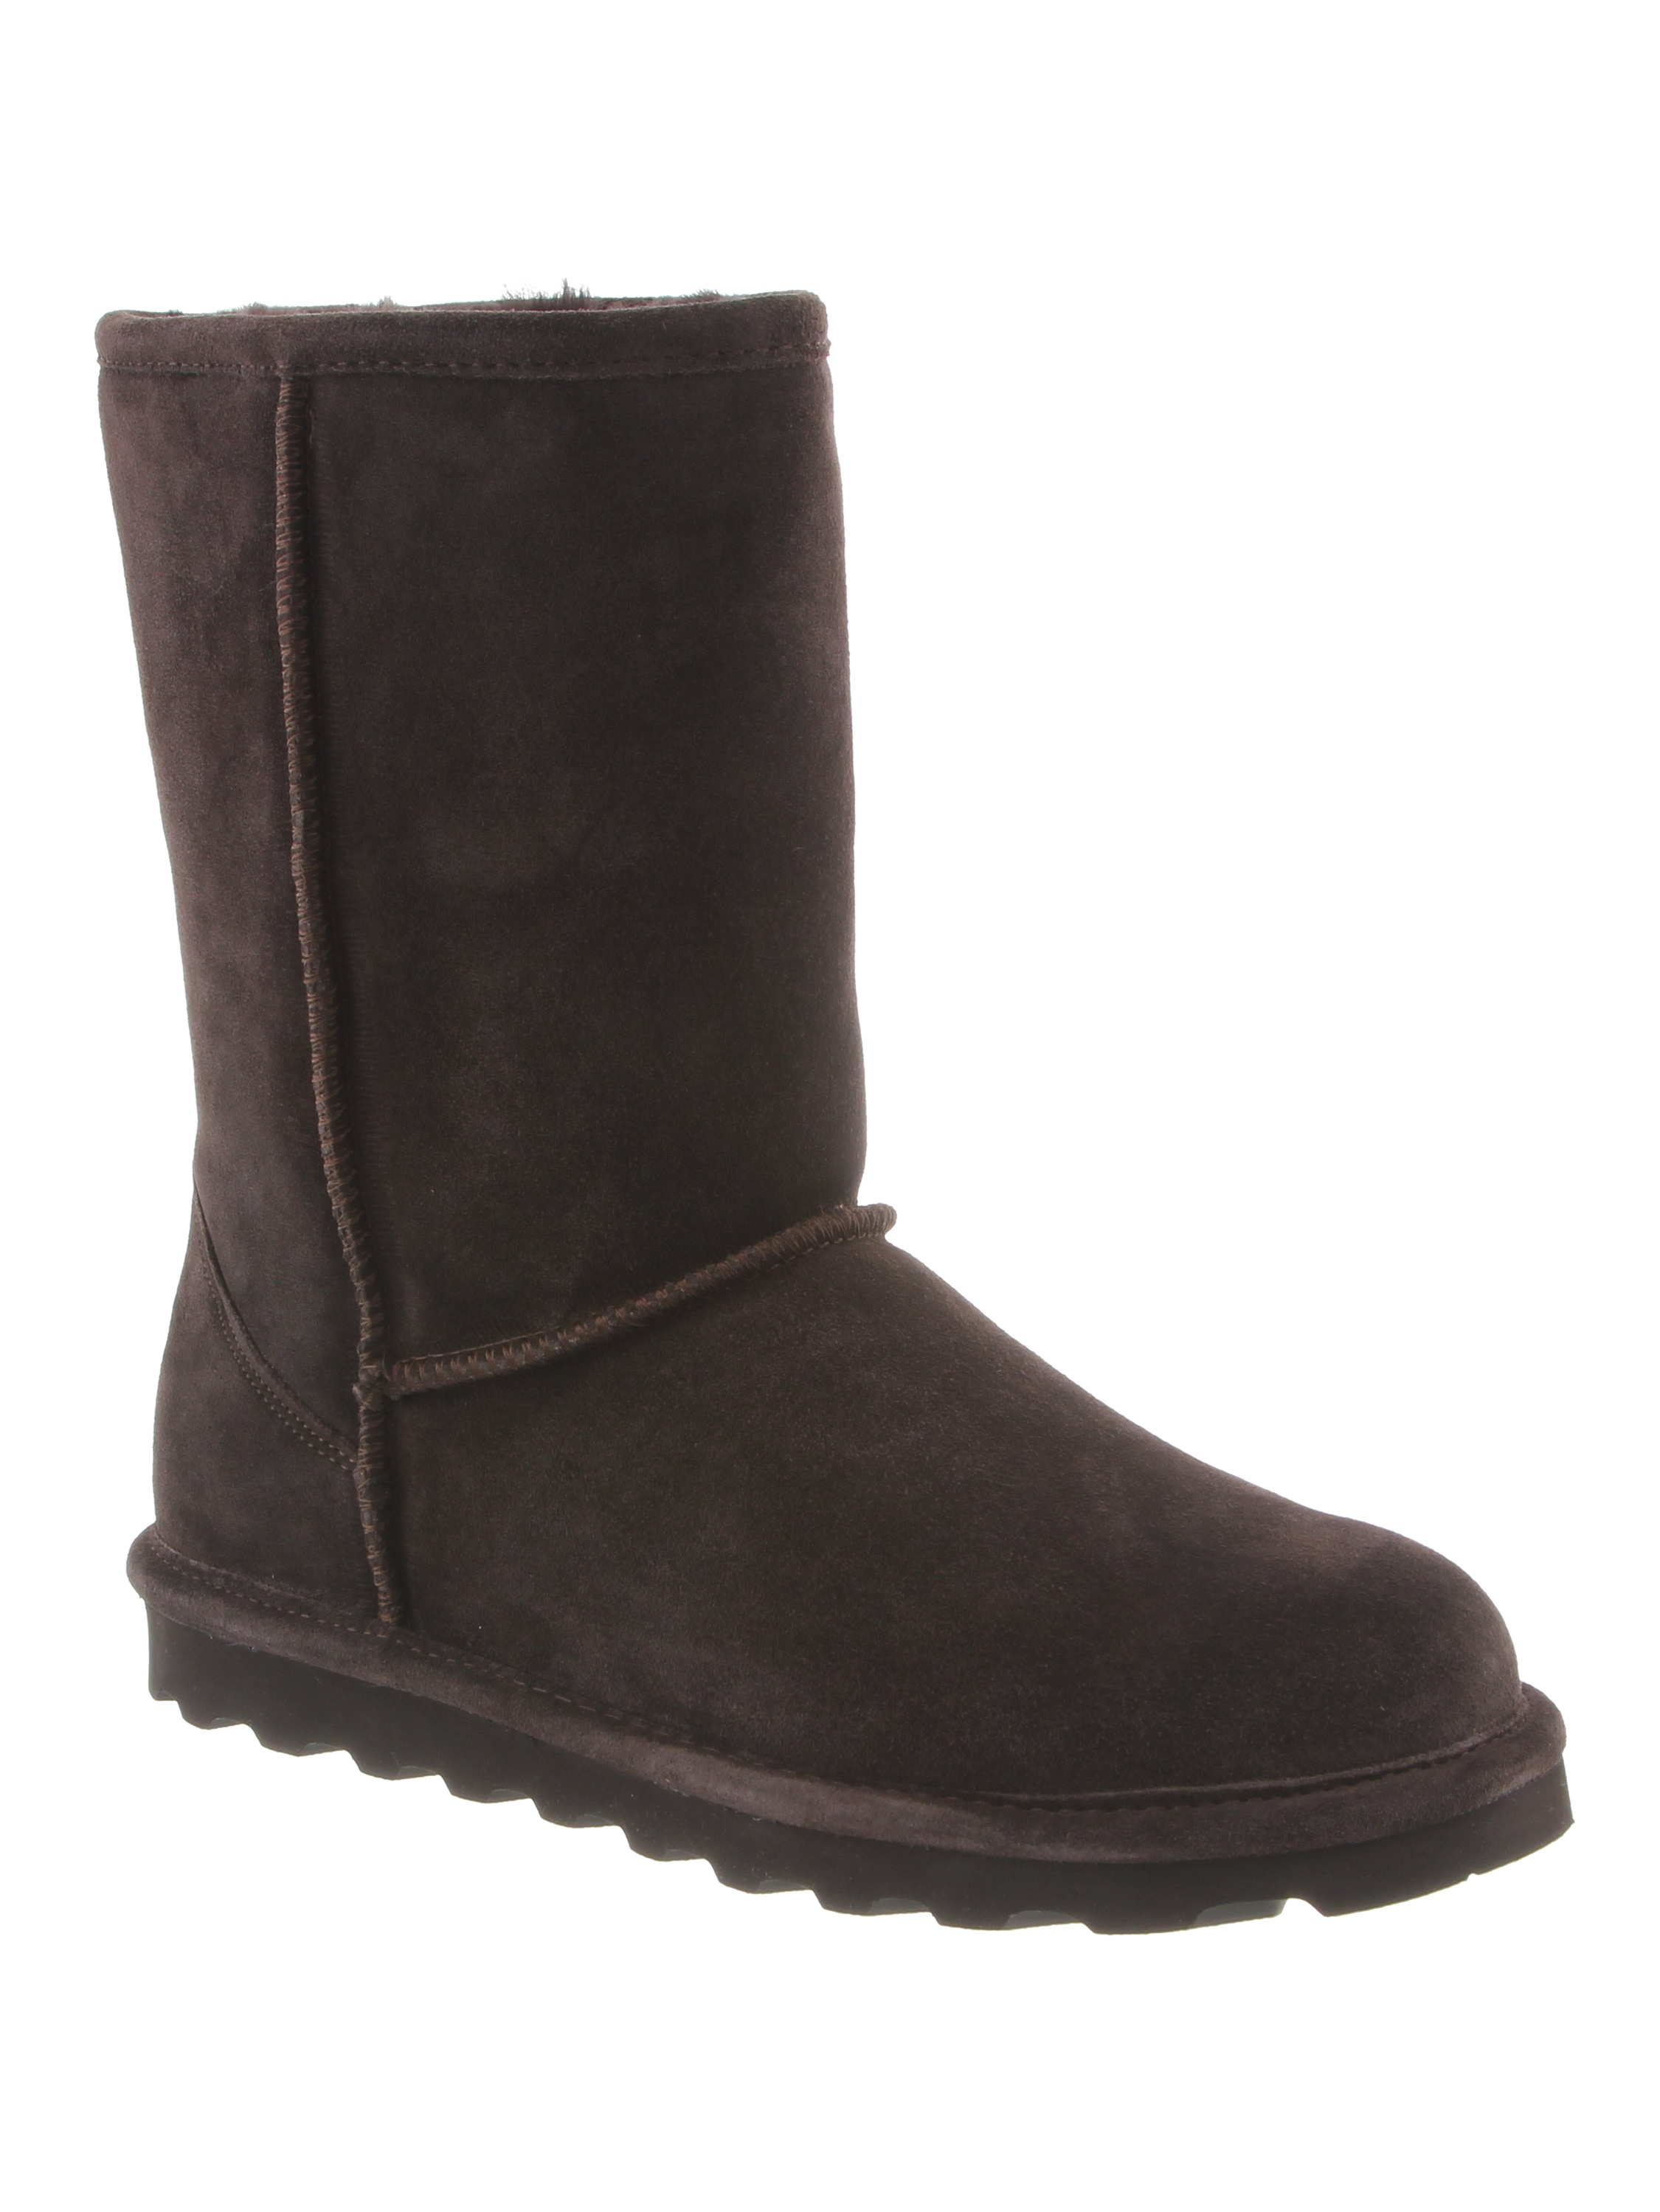 Bearpaw Classic Elle Short Chocolate Boot 12 M US by BEAR PAW